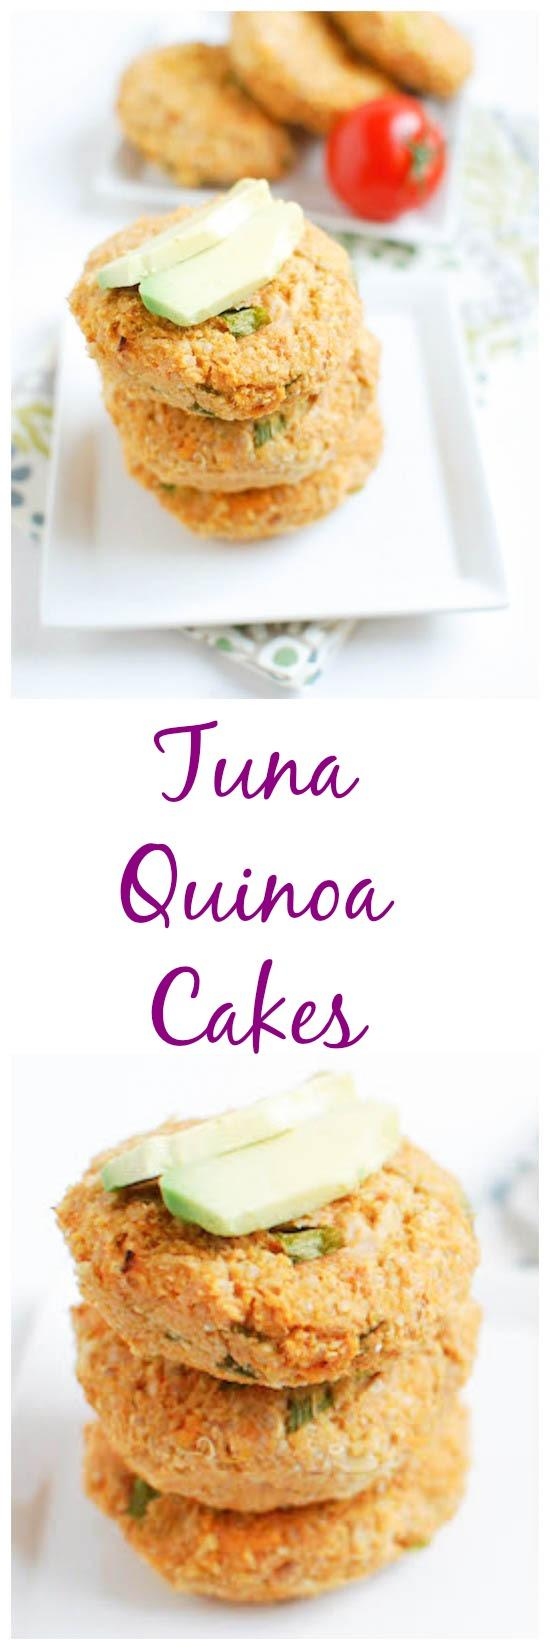 These Tuna Quinoa Cakes are packed with protein and taste great hot or cold!